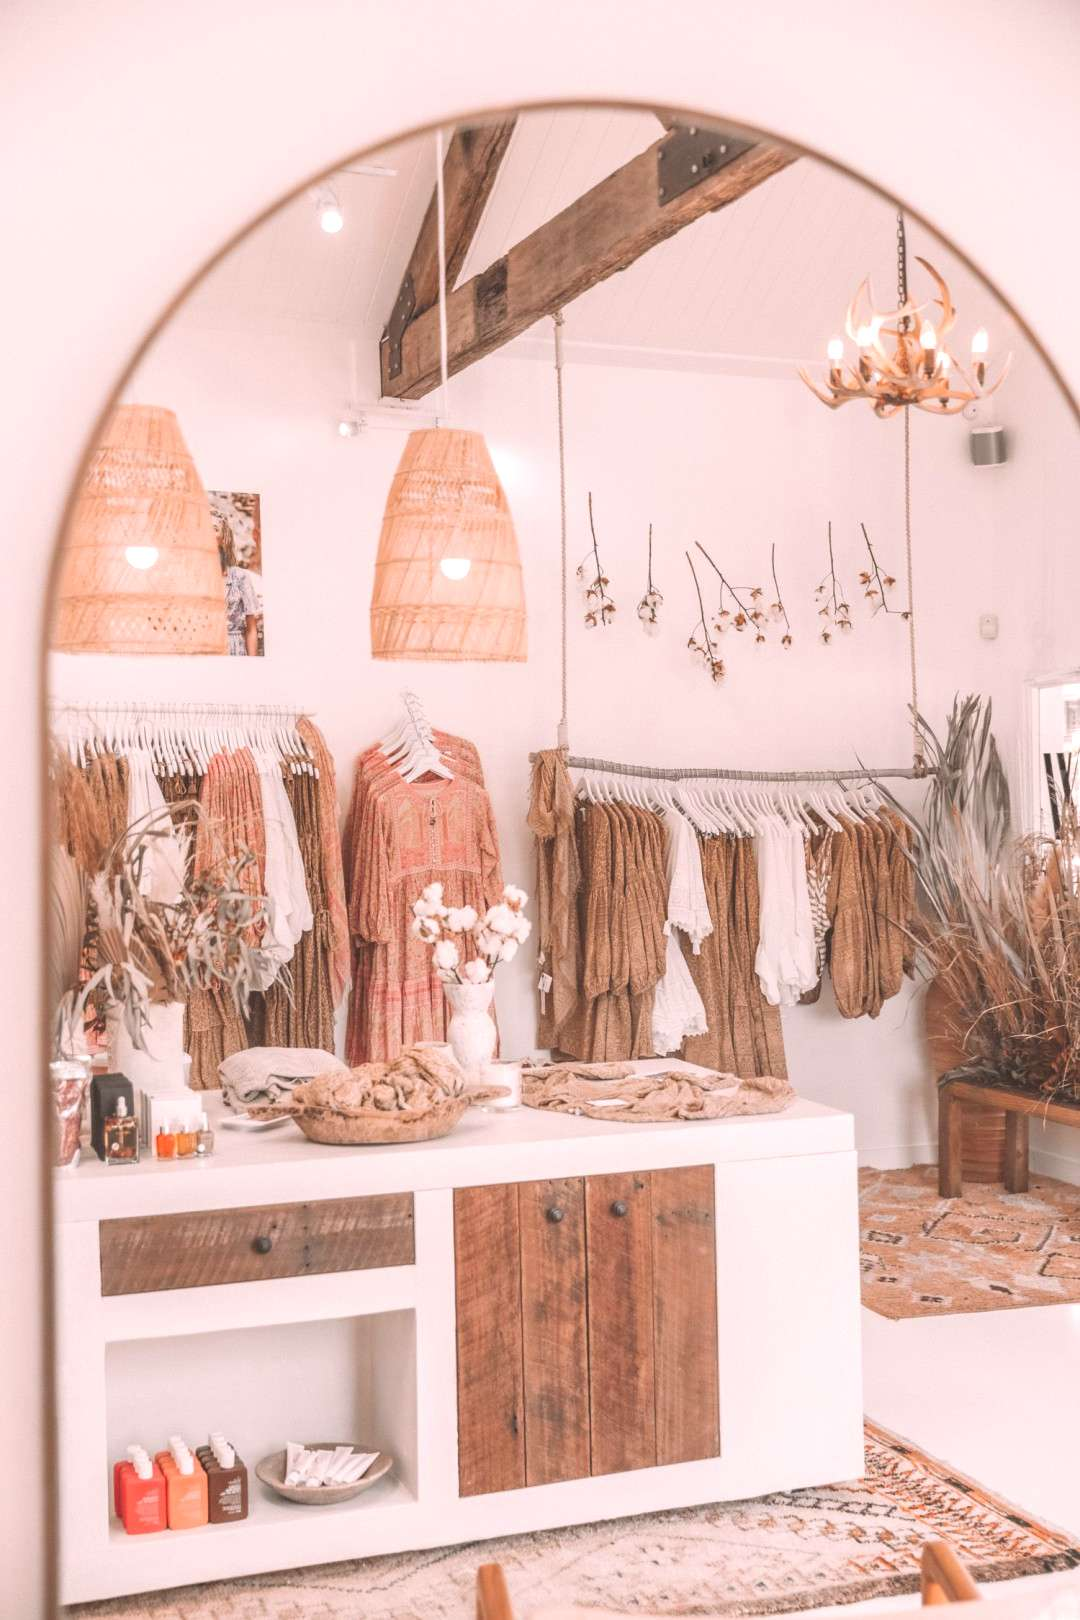 STEP INSIDE THE SPELL BOUTIQUE – Spell & the Gypsy Collective